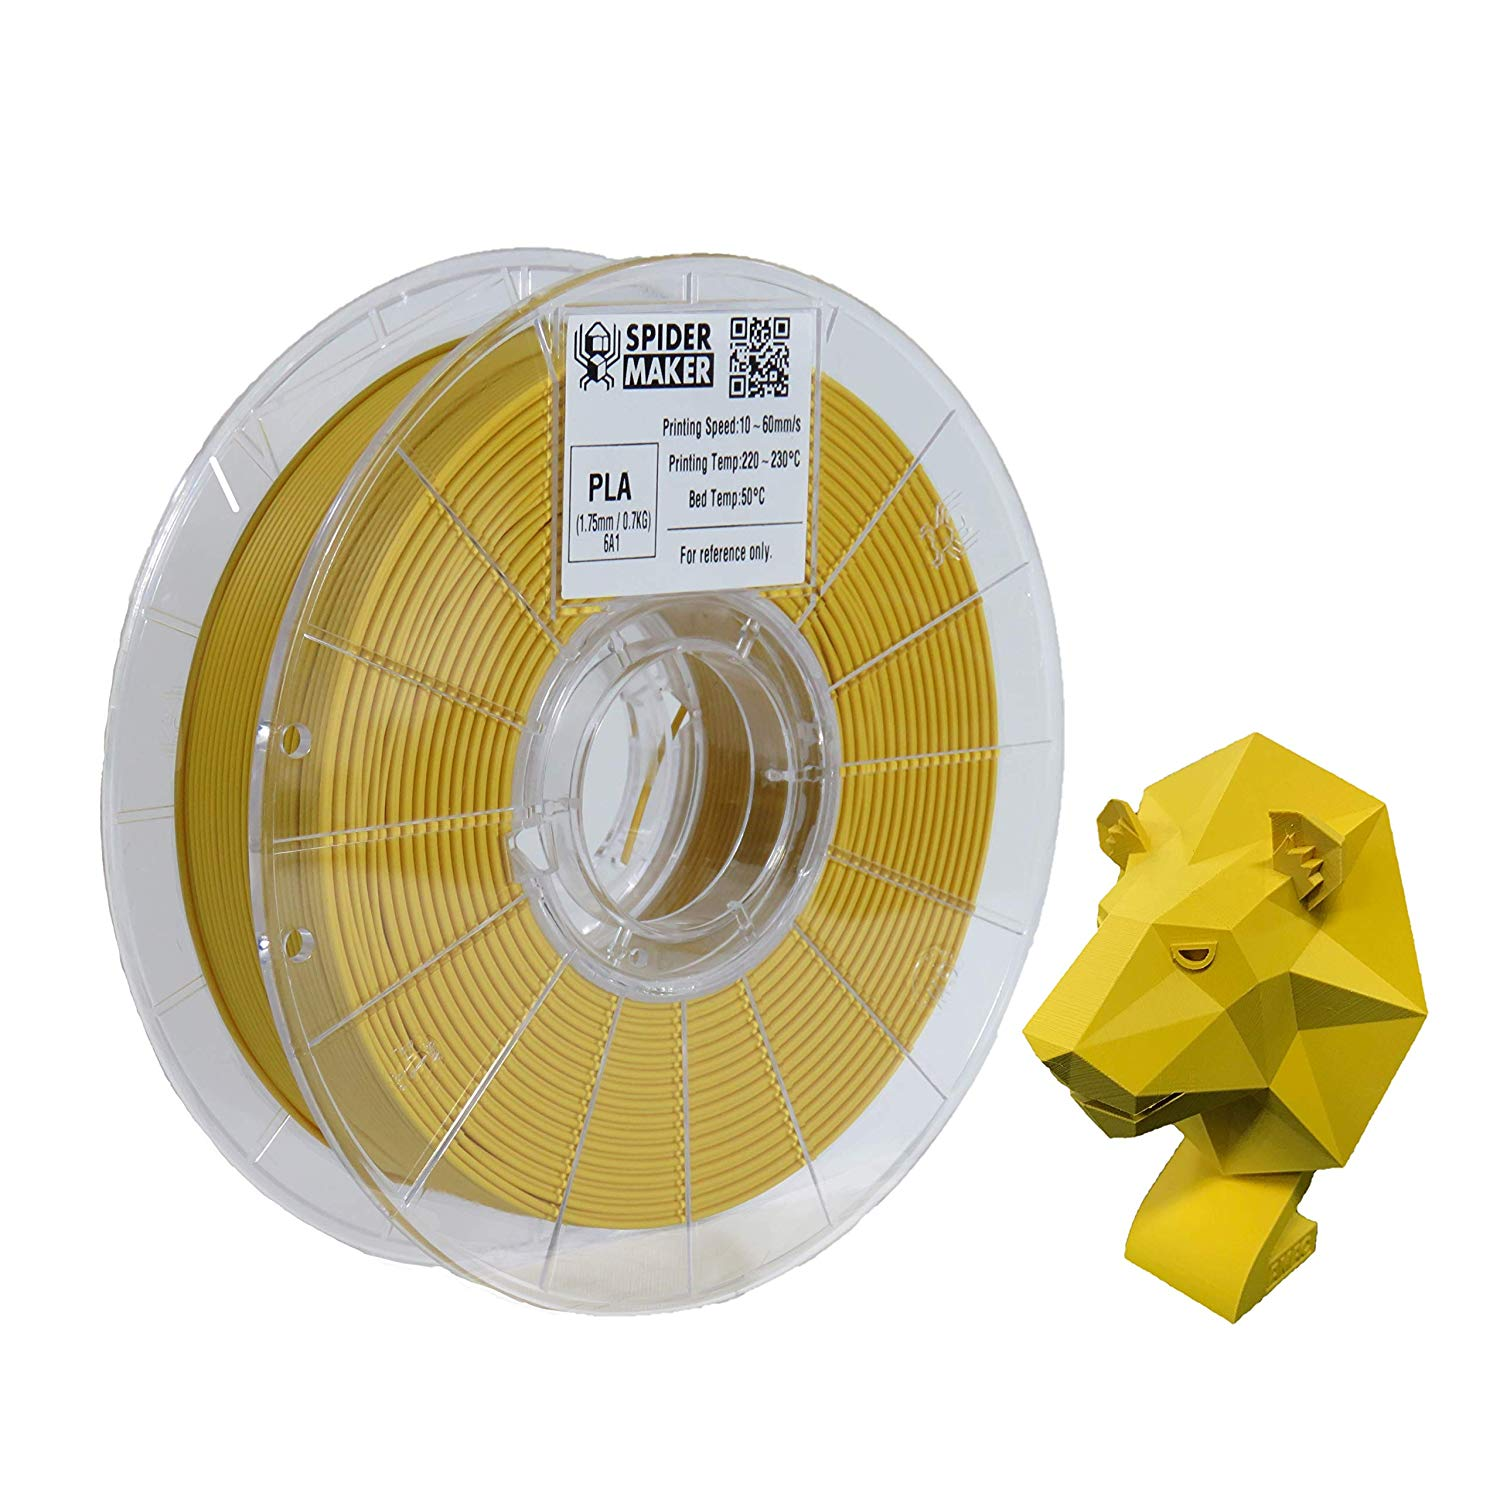 [SpiderMaker] 3D Printer PLA Filament - Matte Finish with Incredible Vibrant Colors - 700g